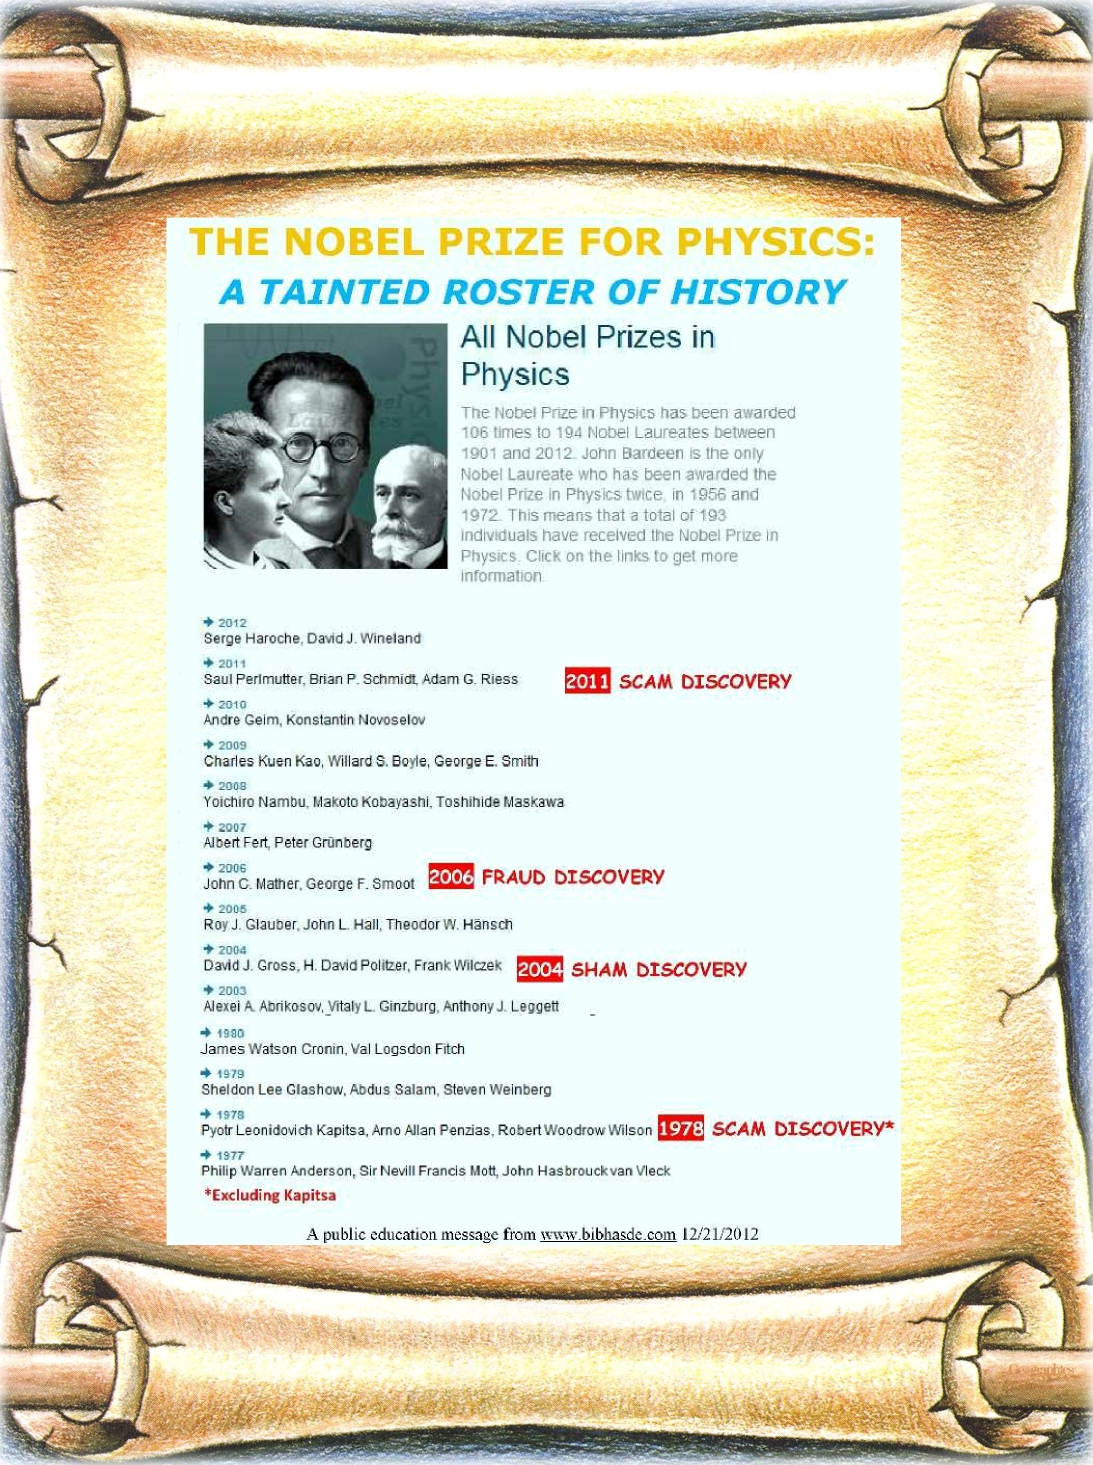 the nobel prize in physics The 1988 nobel prize in physics was awarded to a trio of researchers for their 1962 discovery of the muon-neutrino, based on work conducted at brookhaven.